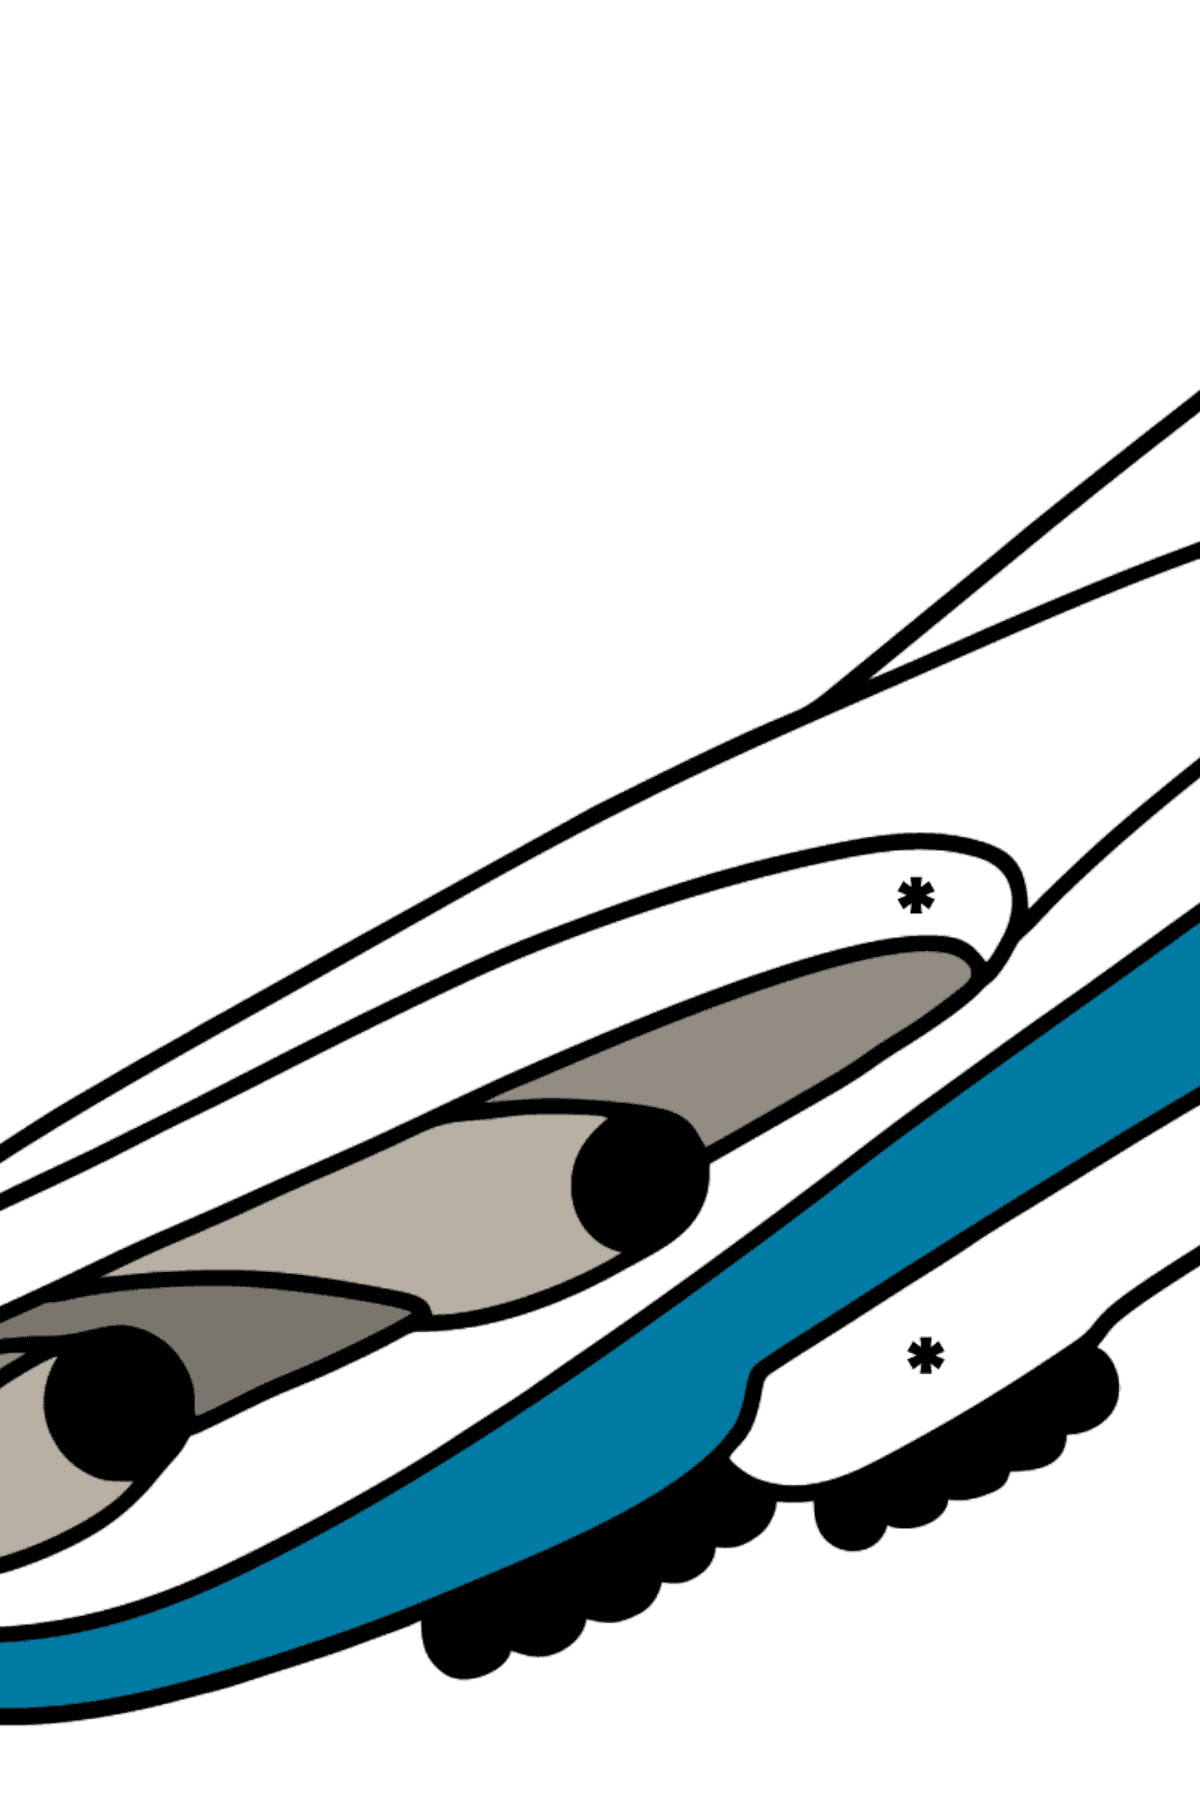 Boeing 747 coloring page - Coloring by Symbols for Kids